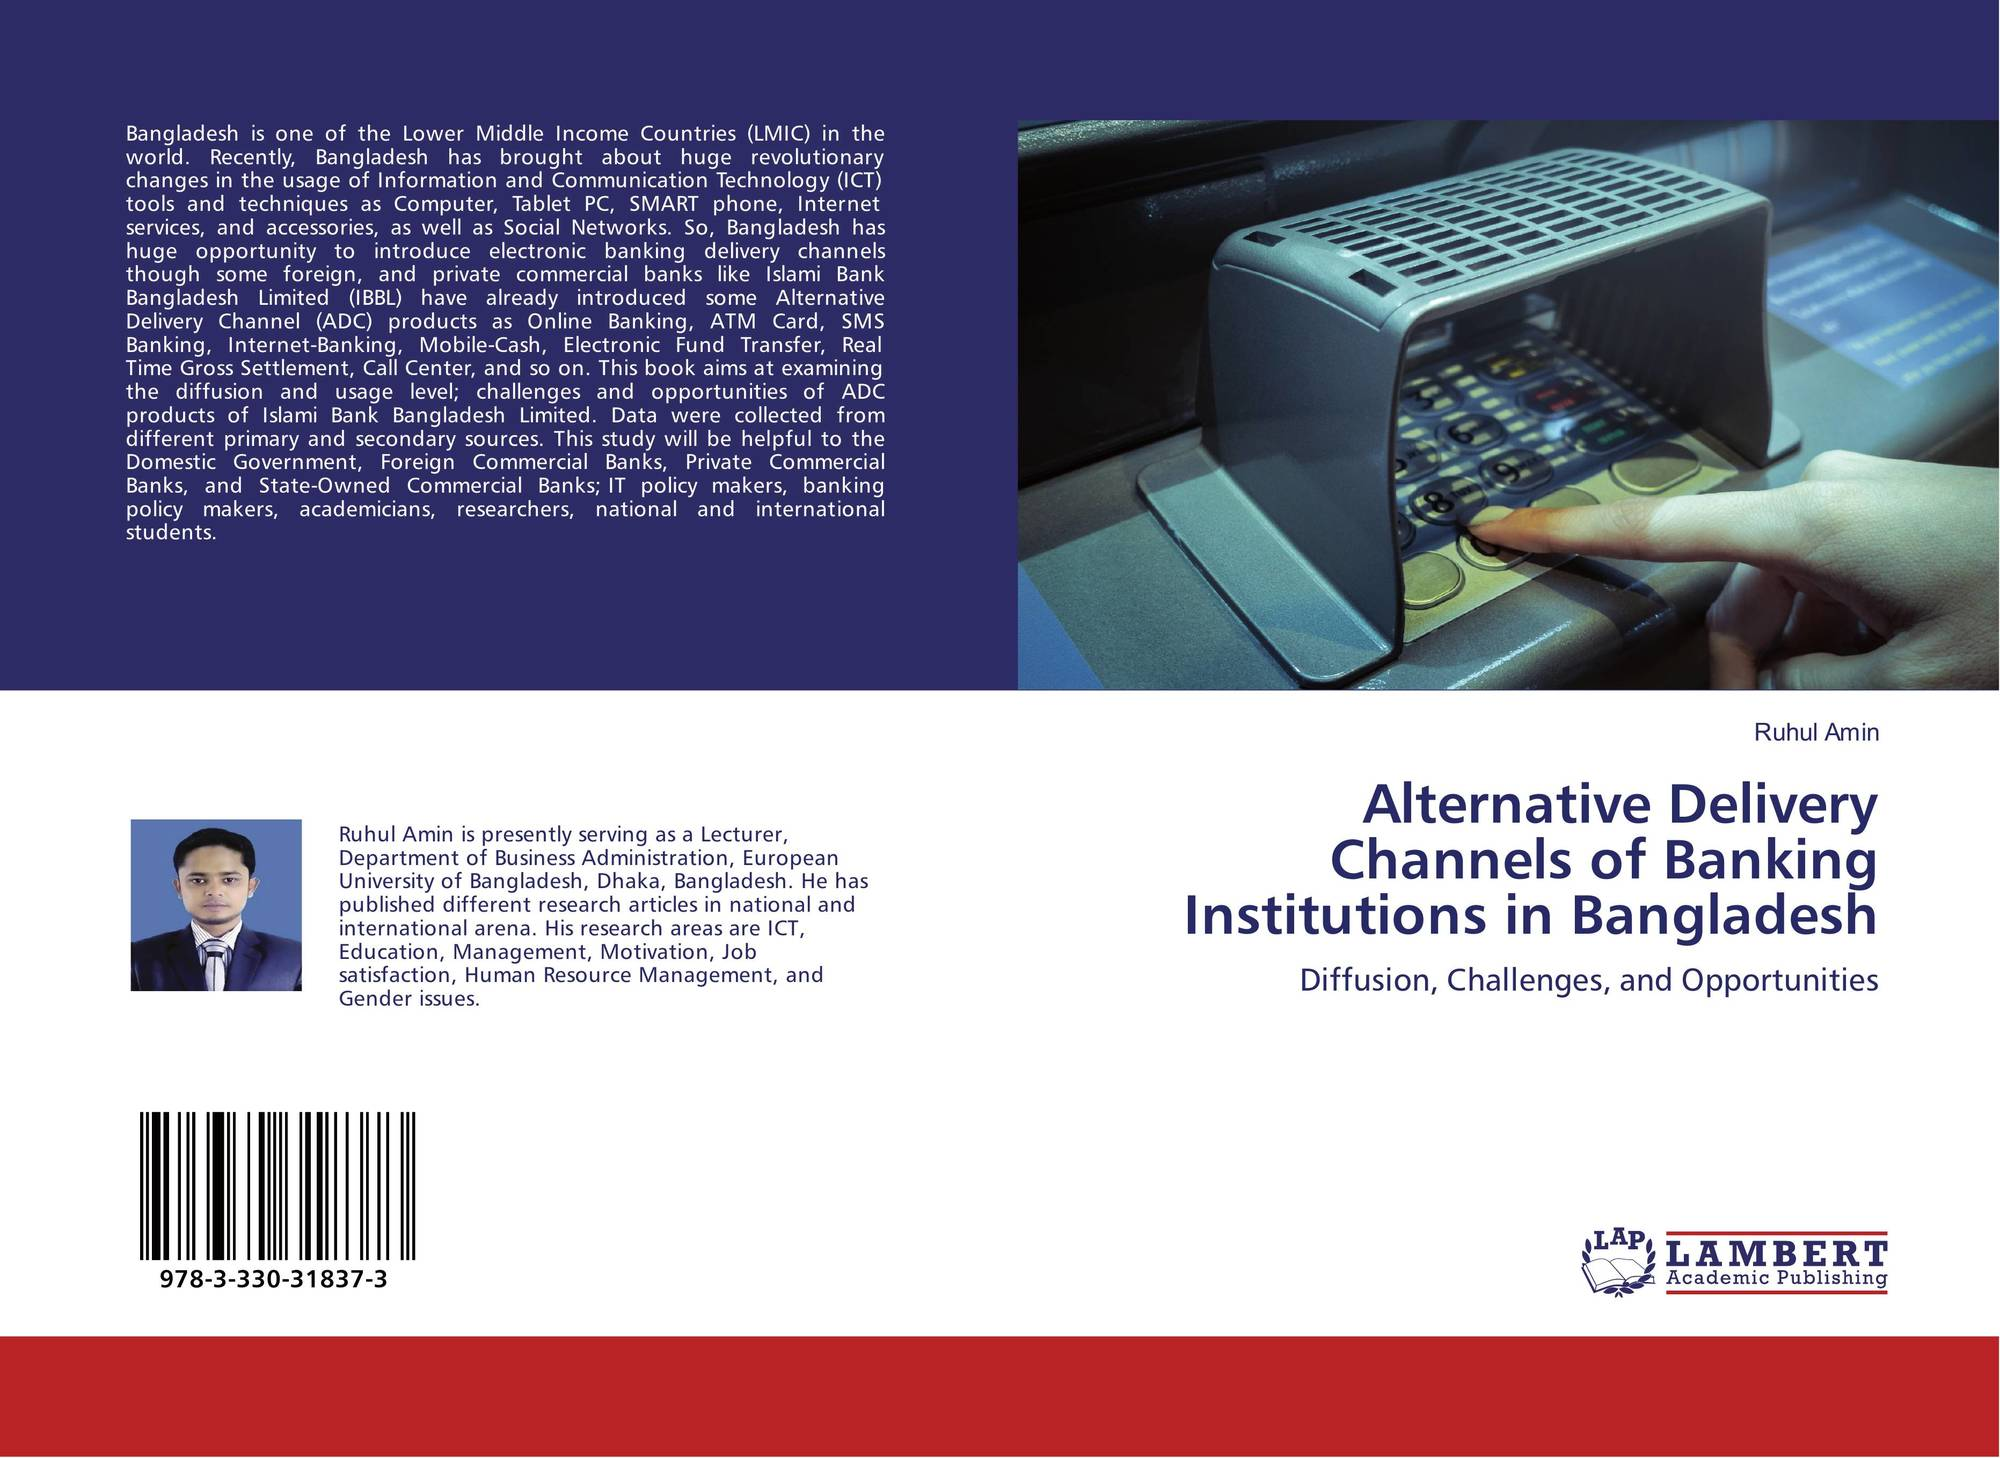 ict in banking in bangladesh Ict for education in bangladesh the ict policy framework for bangladesh focuses on capacity building in terms of infrastructure and developing world bank 0.